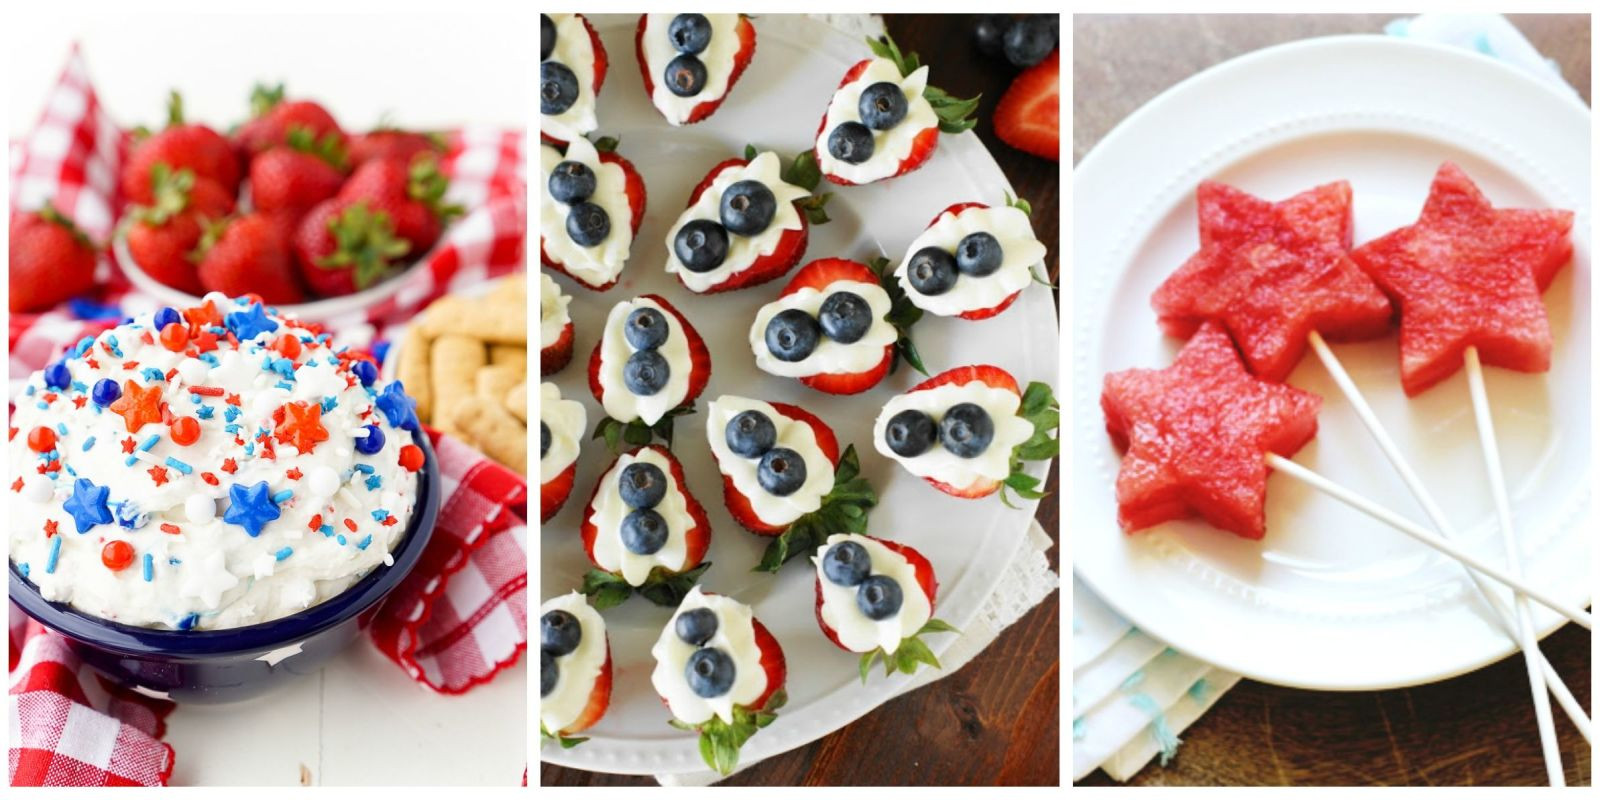 4Th Of July Recipes Appetizers  19 Best 4th of July Appetizers Recipes for Fourth of